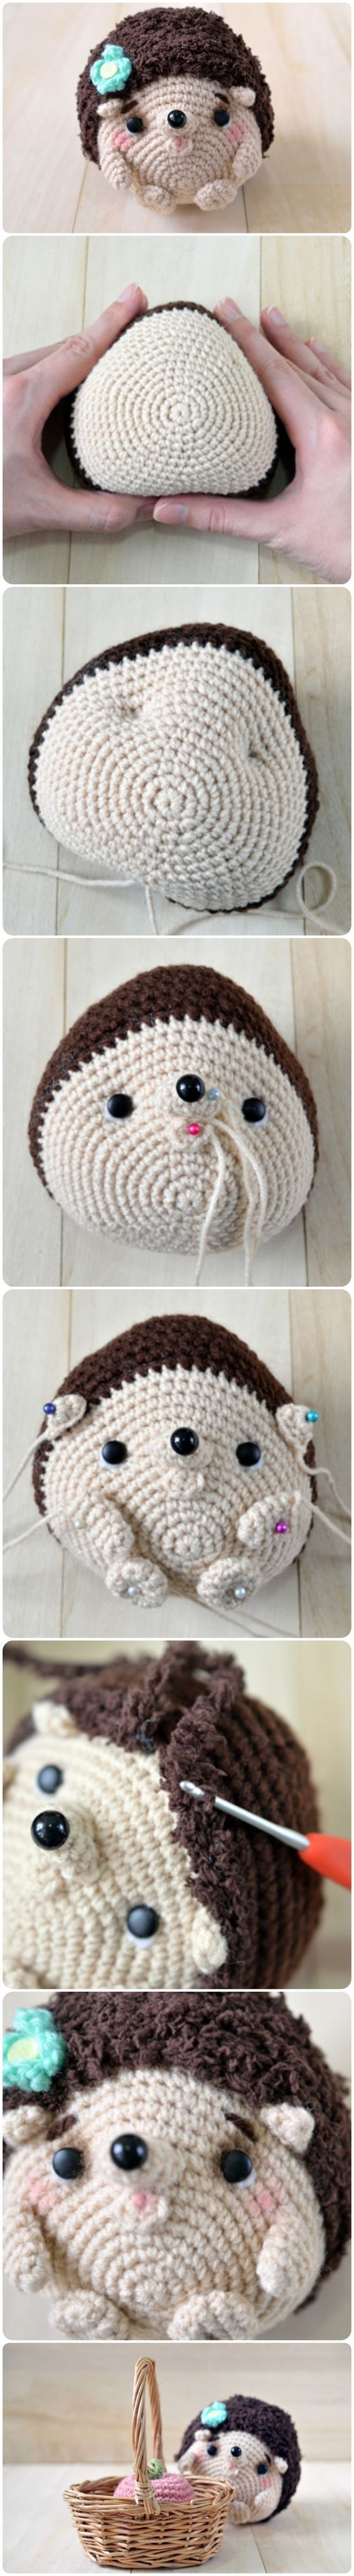 Cute Free Crochet Patterns Pinterest Top Pins | The WHOot | antep ...